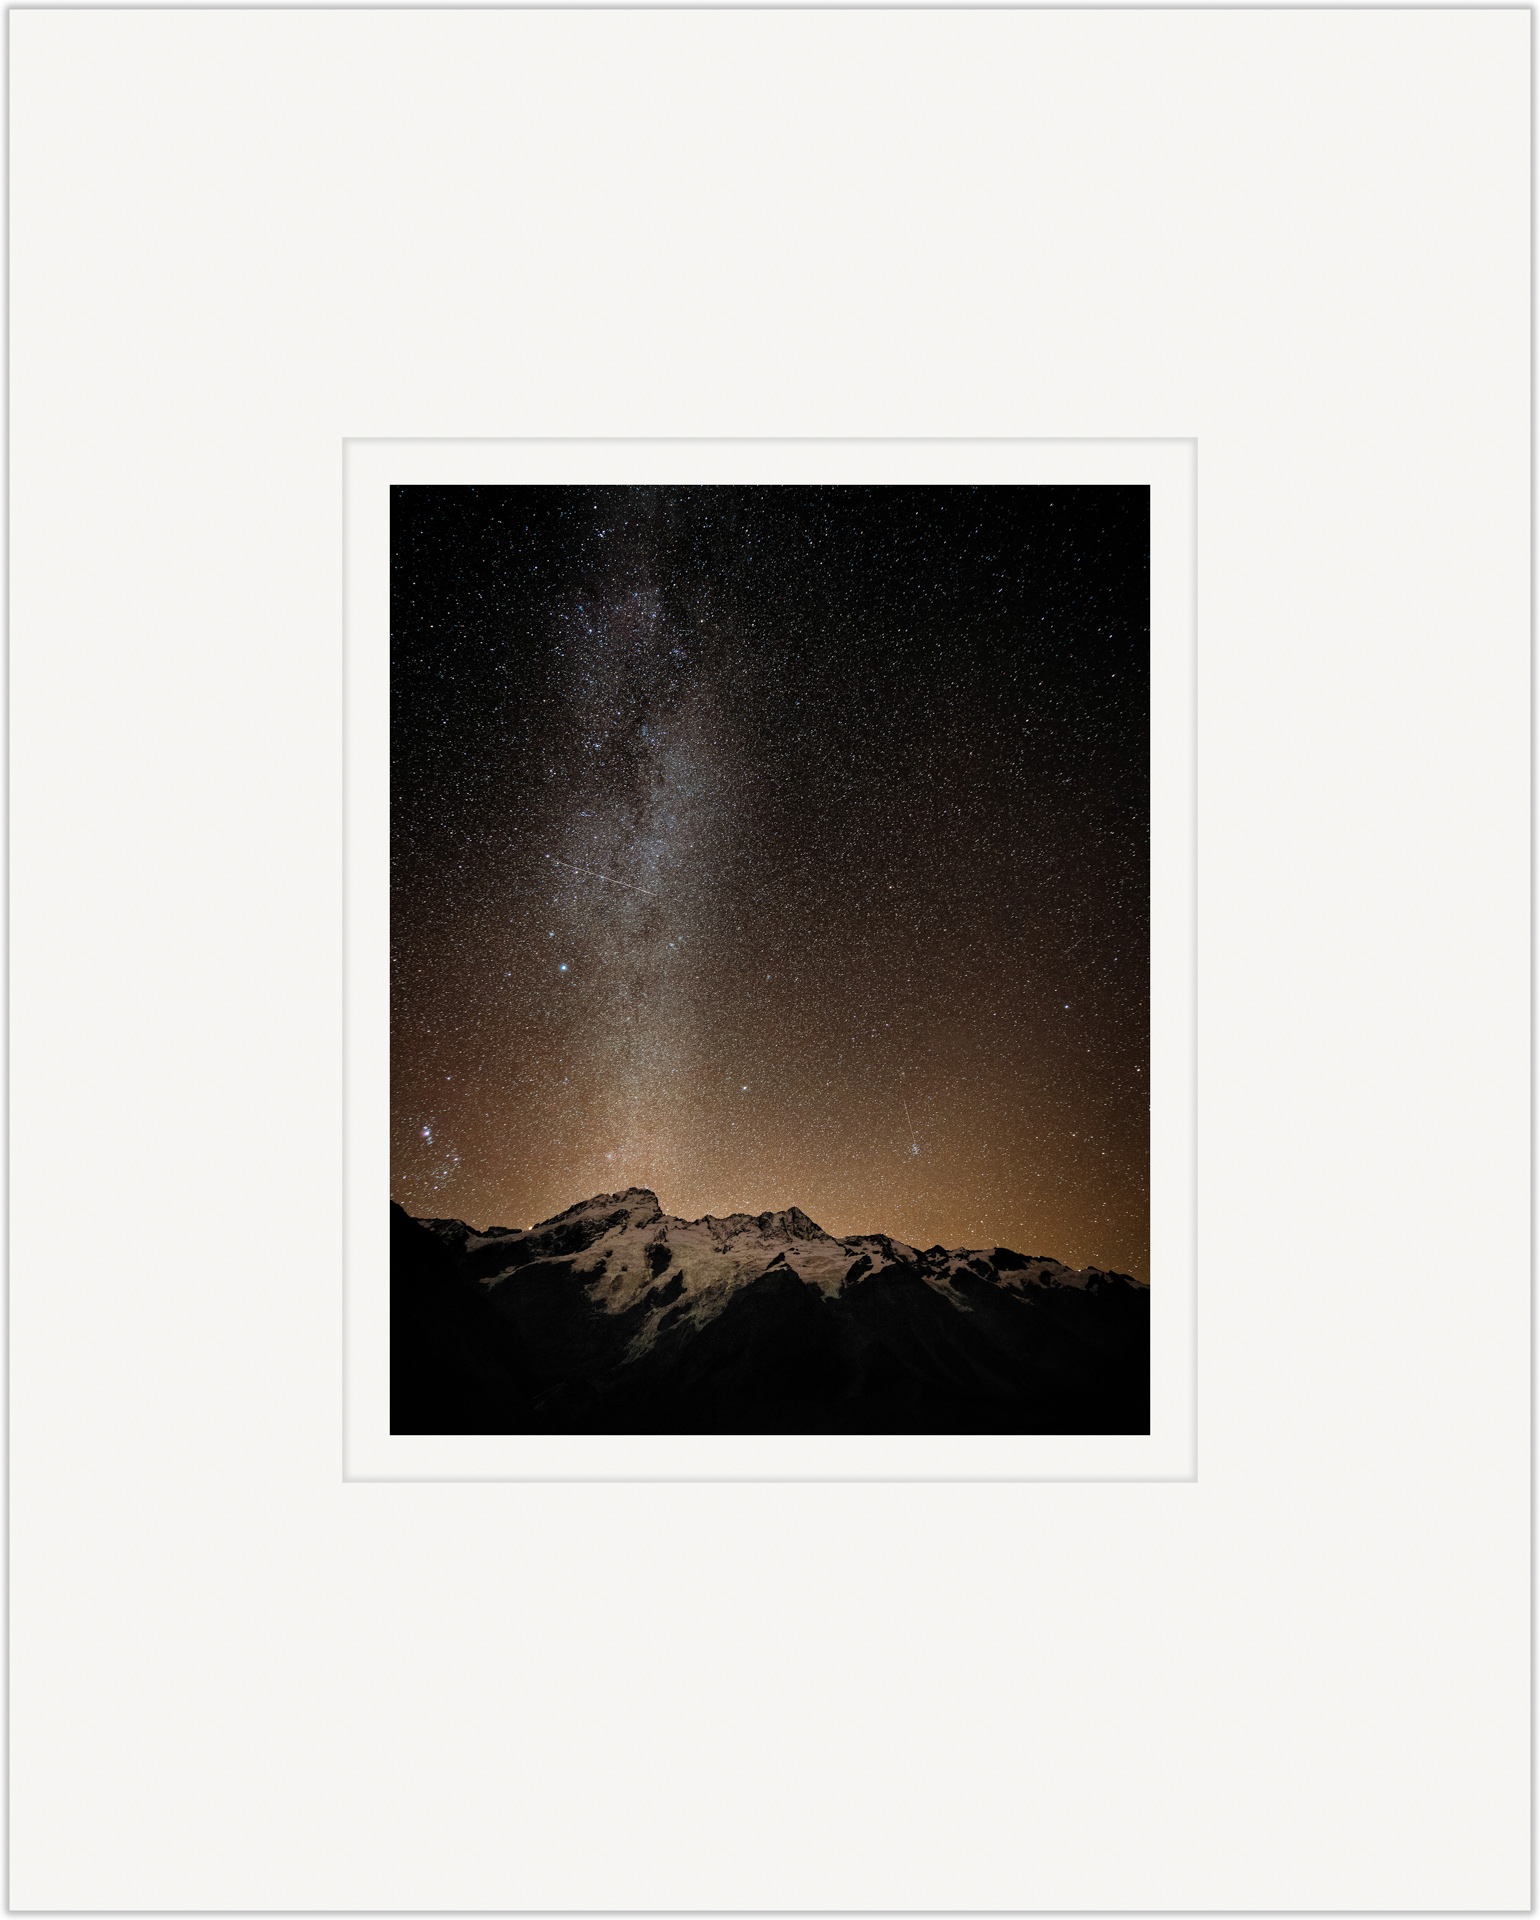 Droplets Upon Mt. Sefton   20cm x 25cm Photo Paper Limited Edition of 99   IDR 799,000